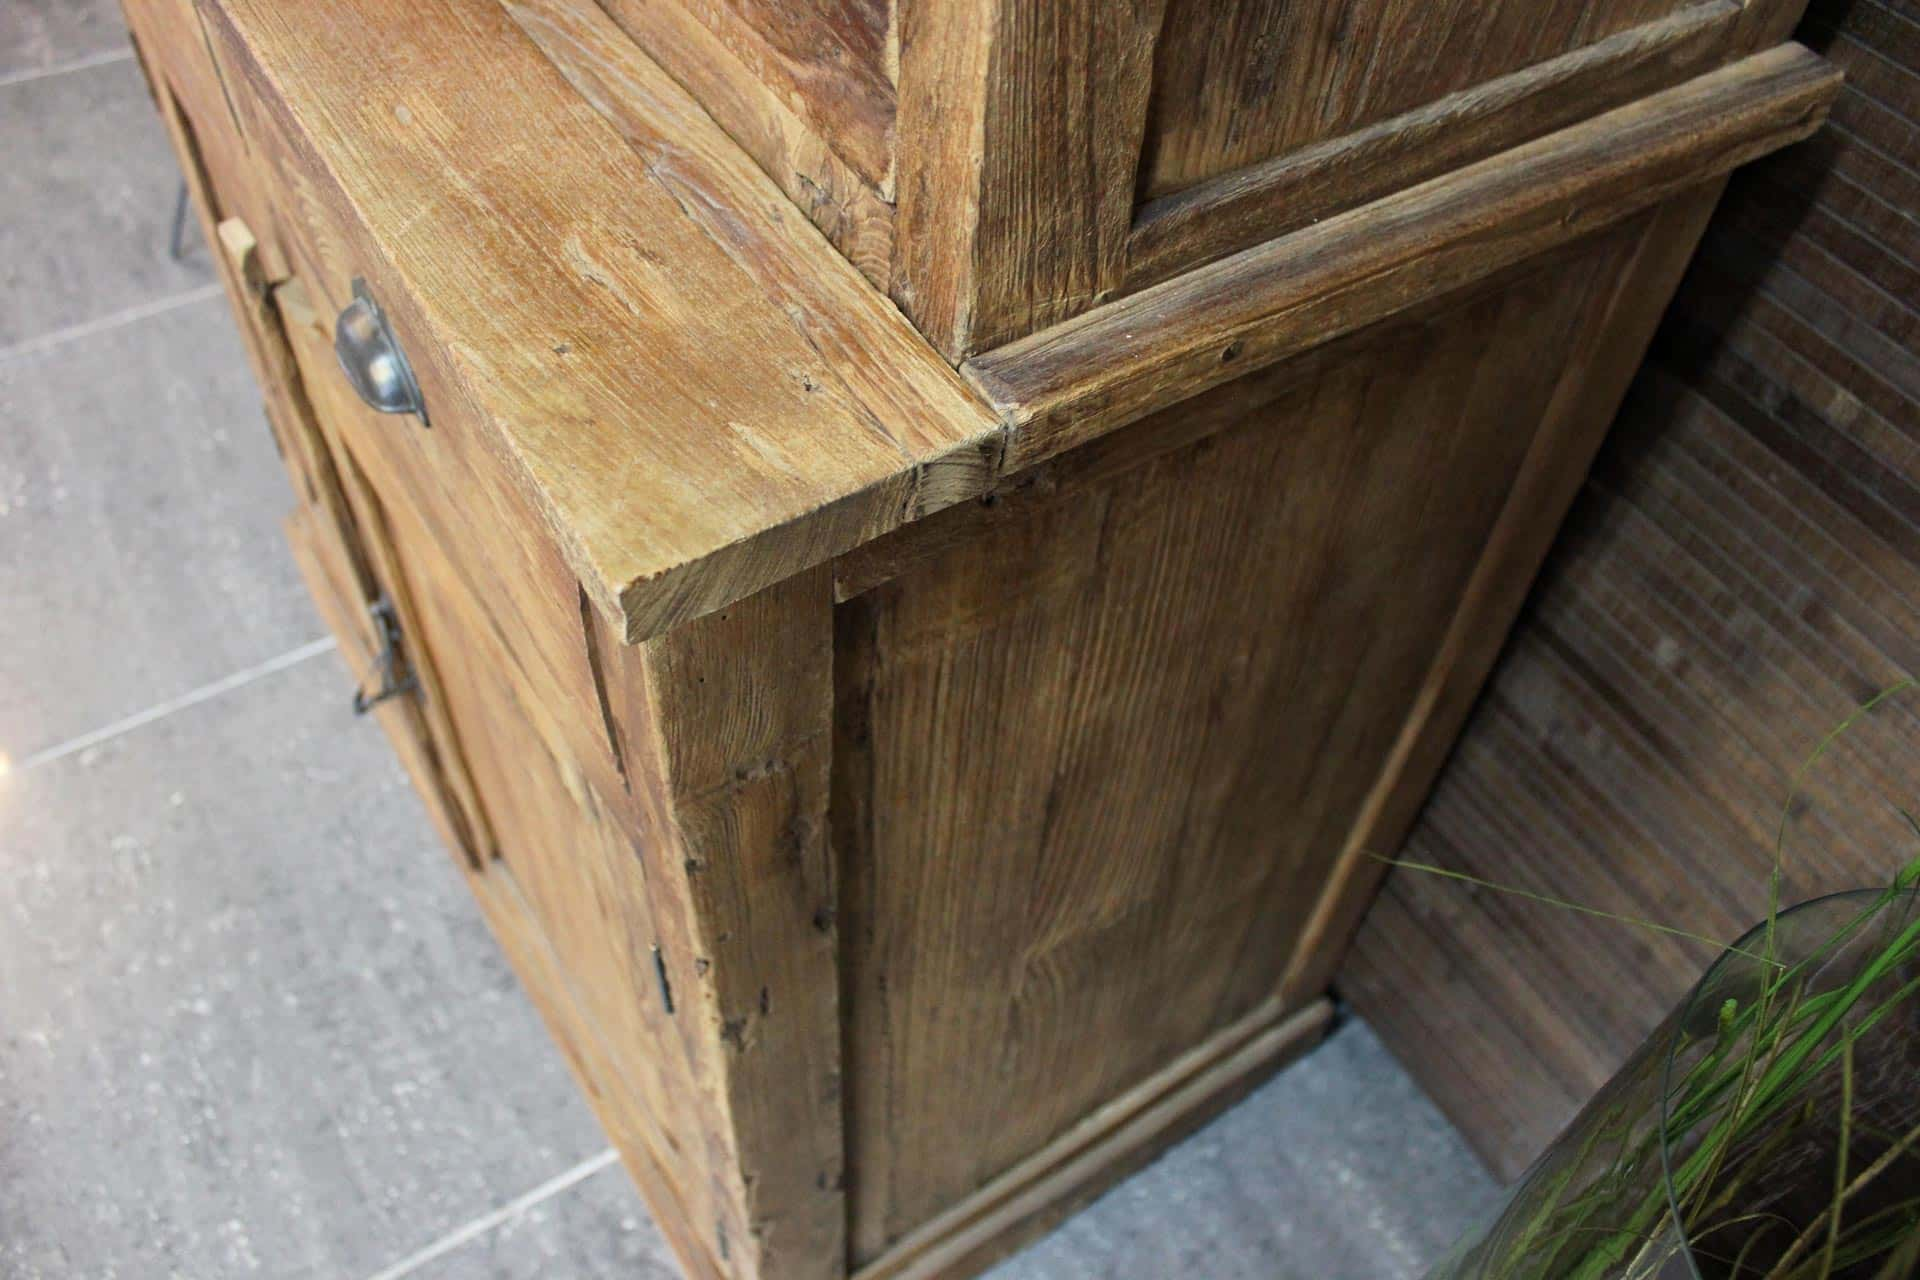 Cuci Pintu 90E Old 4 | rural teak wall cupboard in old erosion teak. This closed sideboard has revolving doors and drawers. Teak furniture store TEAK2.